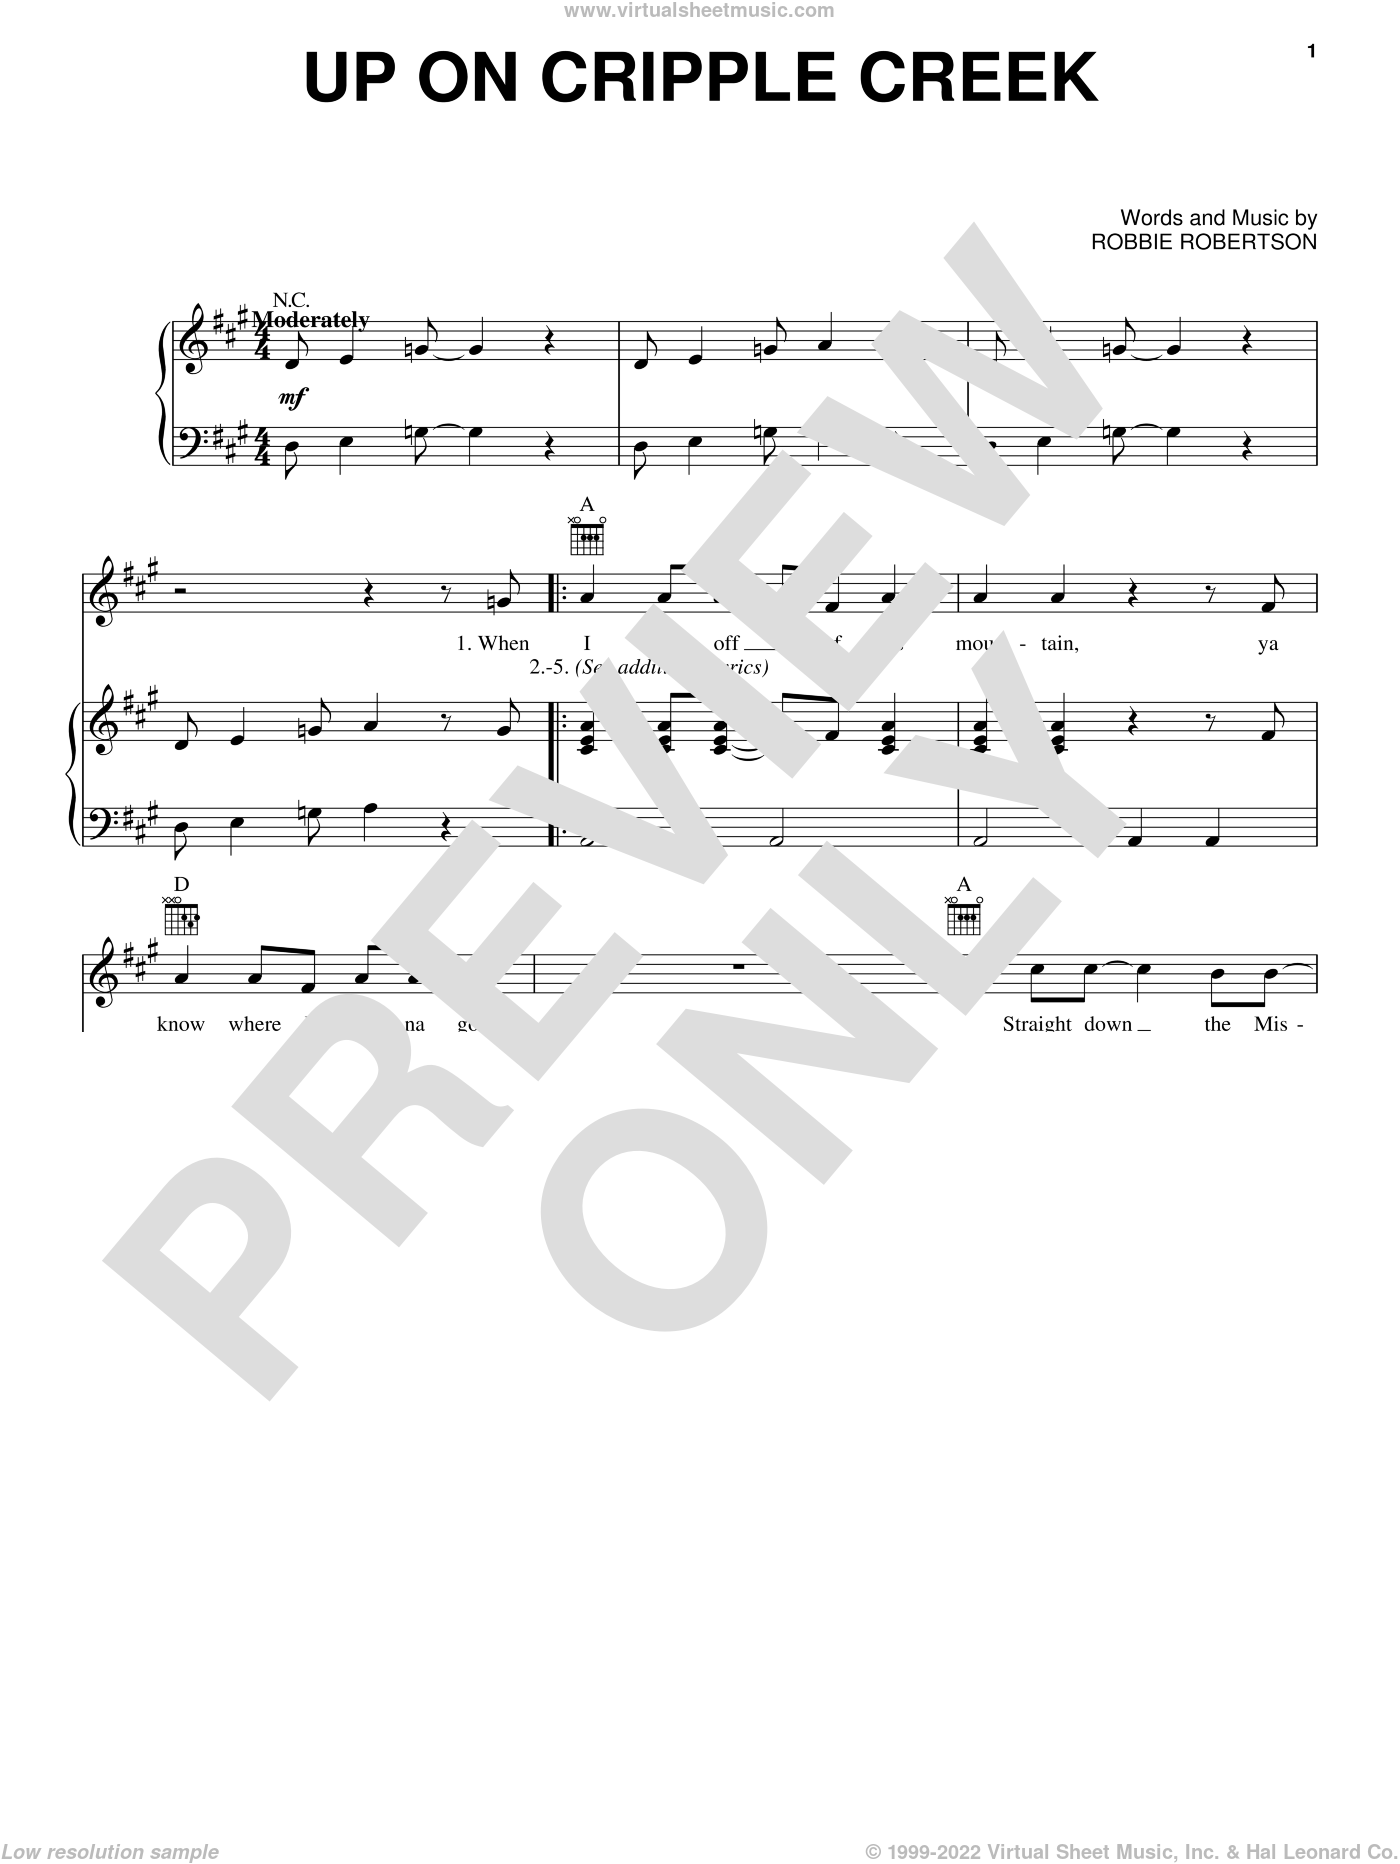 Up On Cripple Creek sheet music for voice, piano or guitar by The Band and Robbie Robertson, intermediate skill level